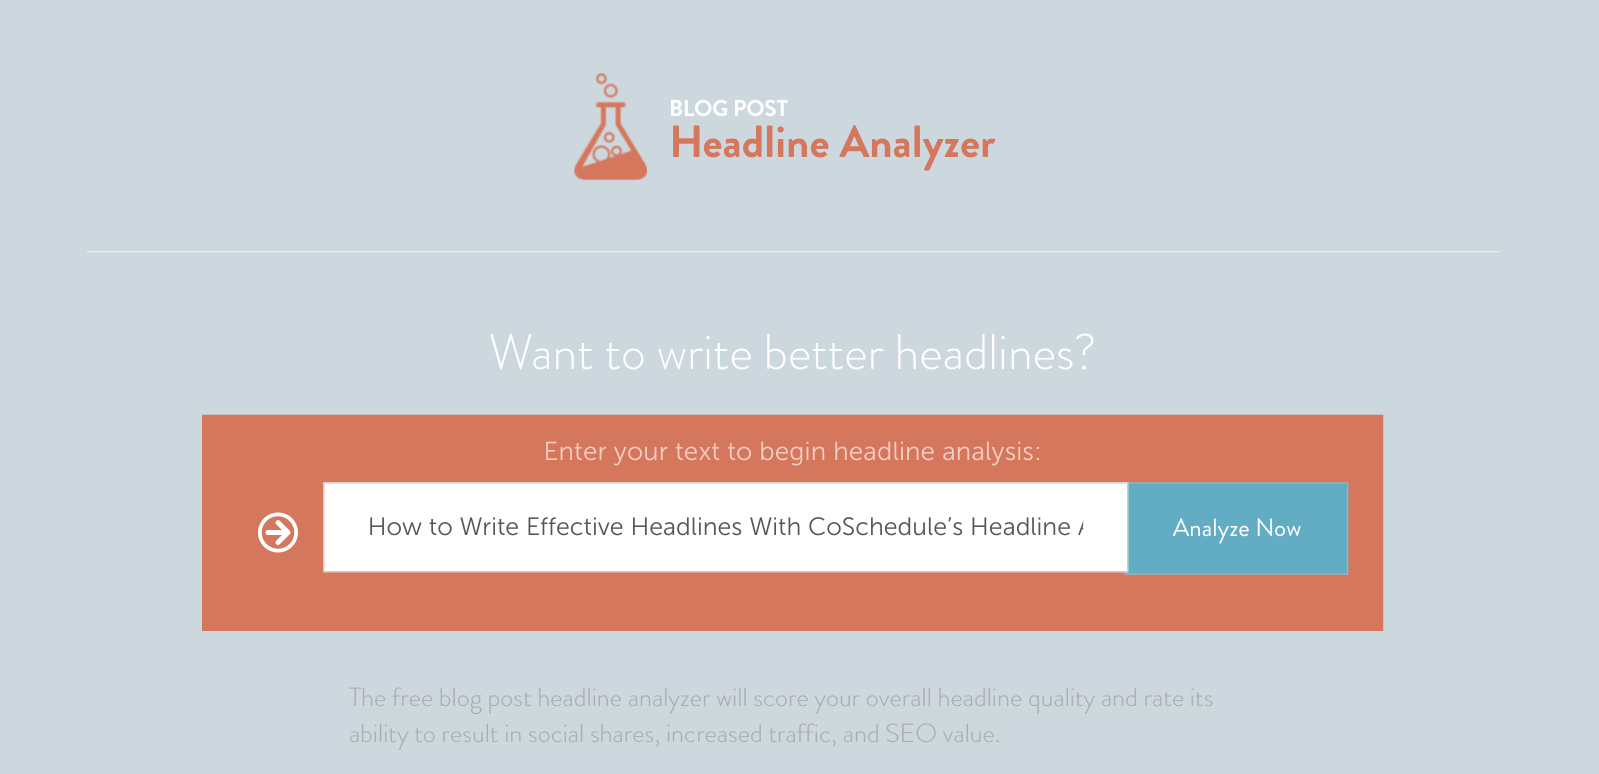 Blog-post-headline-analyzer-to-write-effective-headlines.png